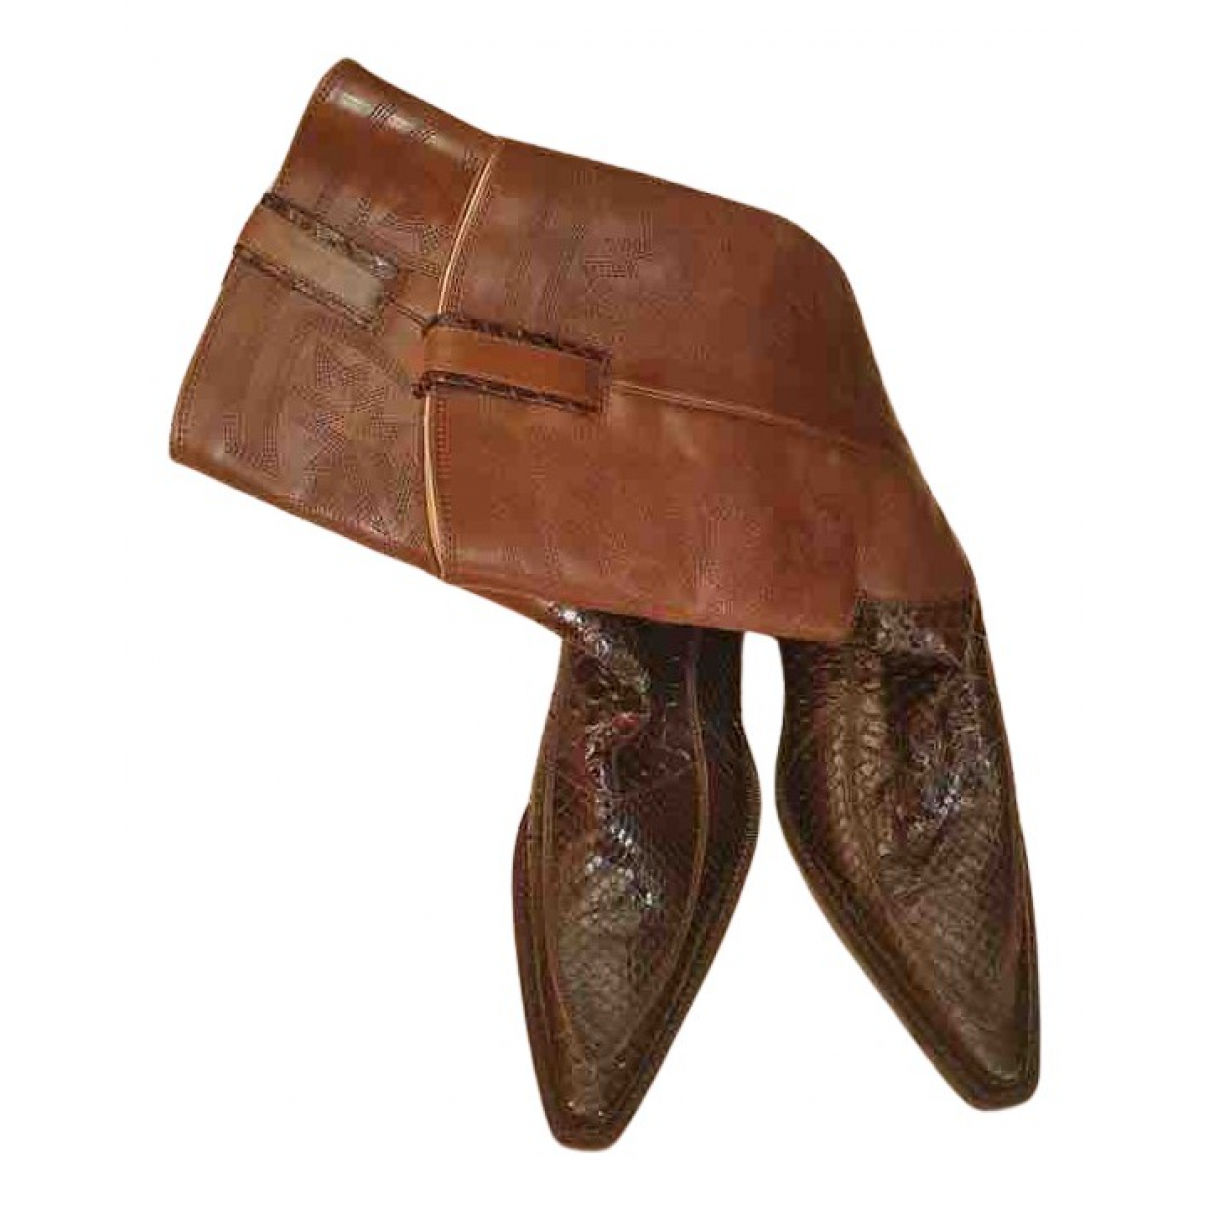 Dolce & Gabbana N Brown Leather Boots for Women 4 UK